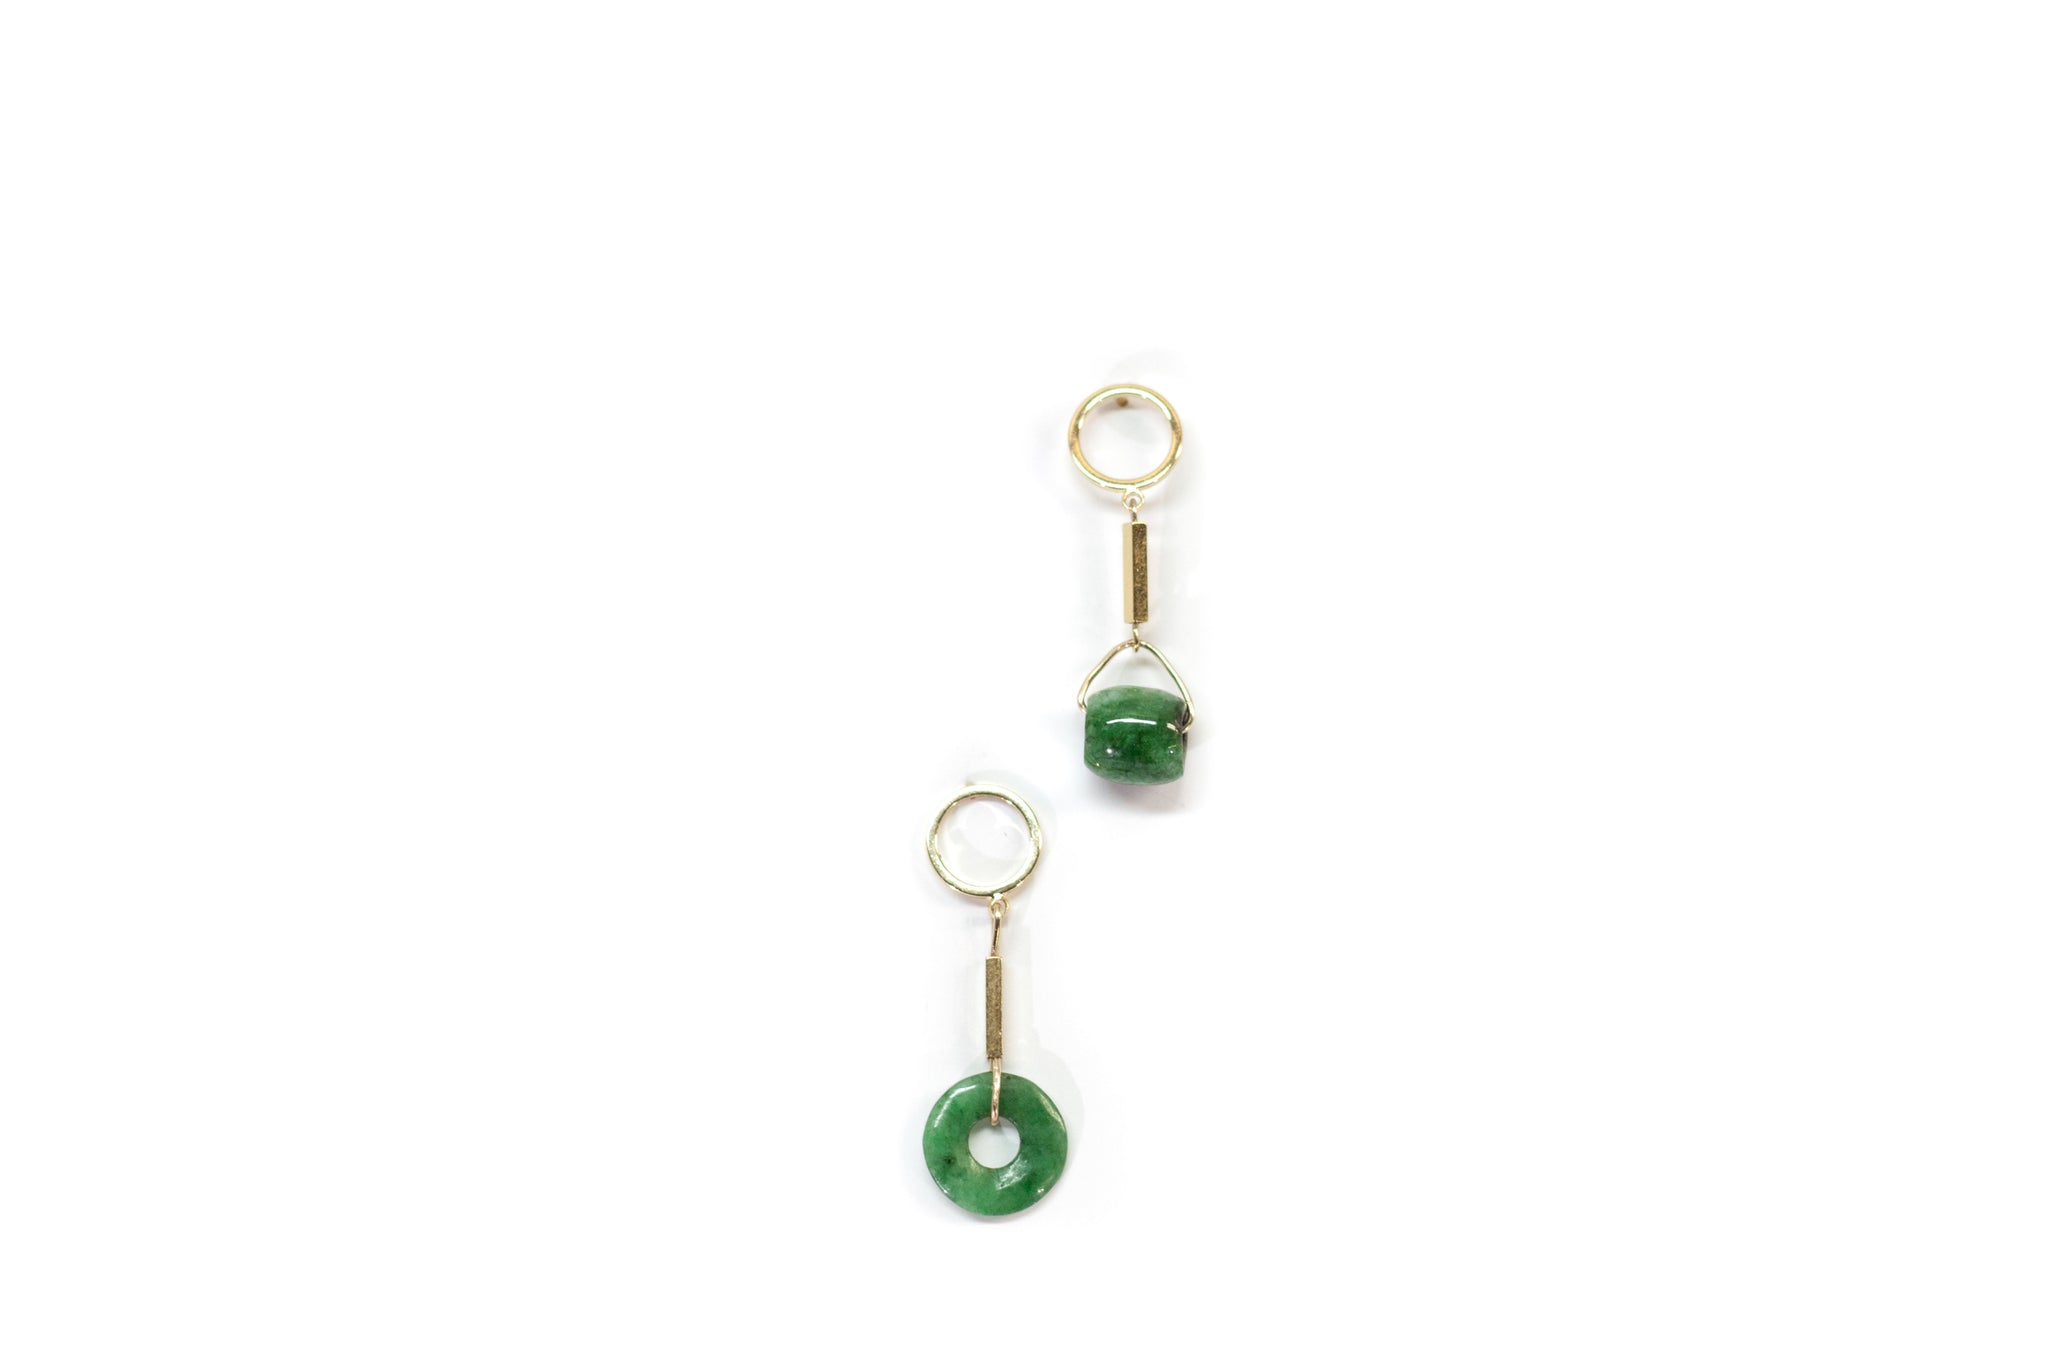 Dark green jade charm